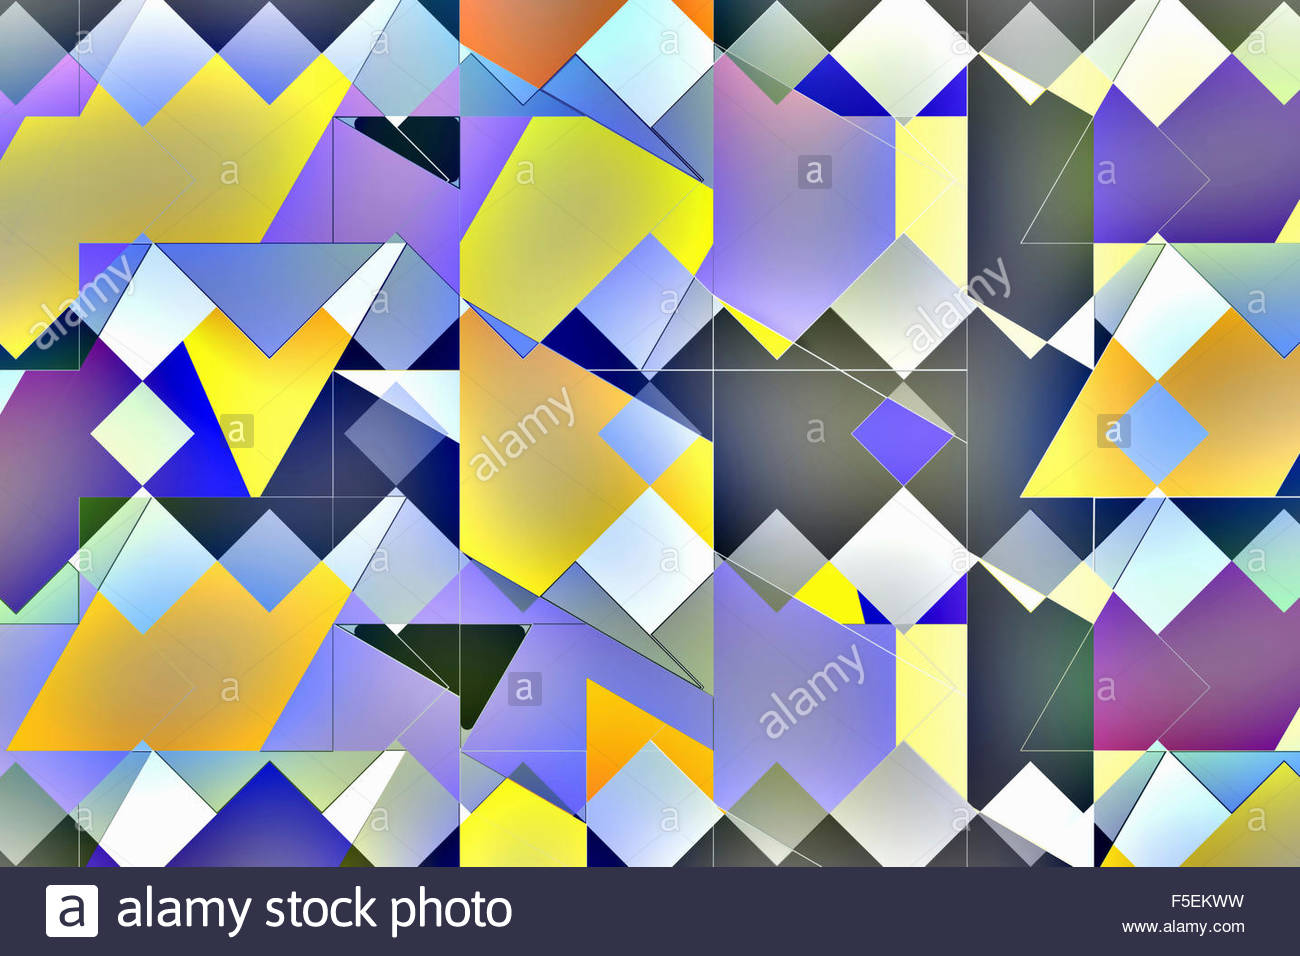 Abstract tile pattern - Stock Image